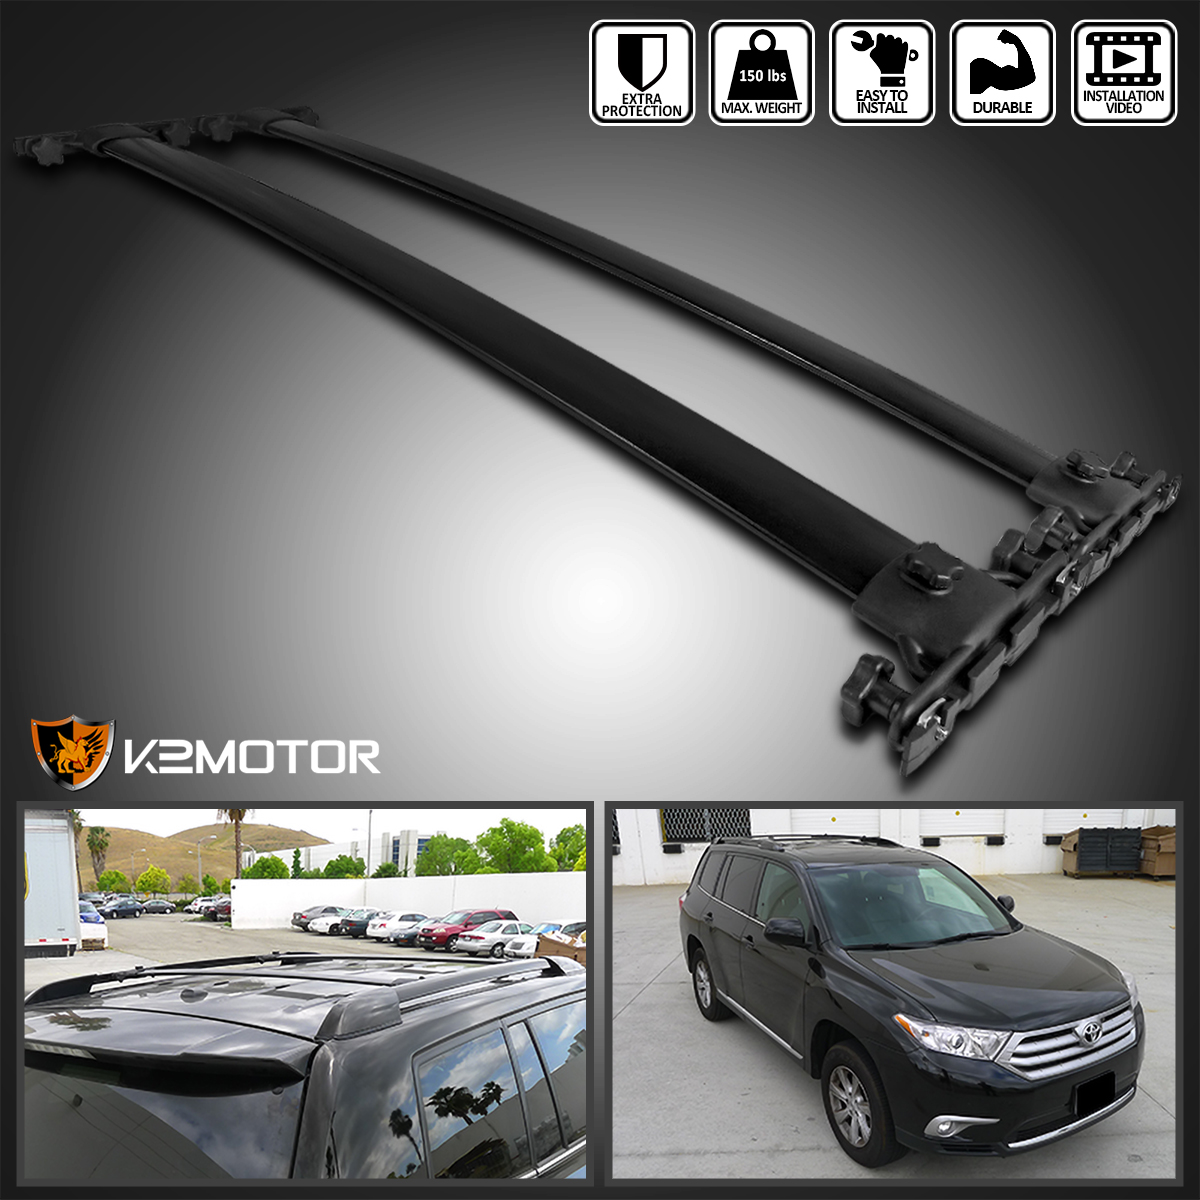 Details About For 08 13 Highlander Aluminum Roof Rack Cross Bar Side Luggage Rail Carrier